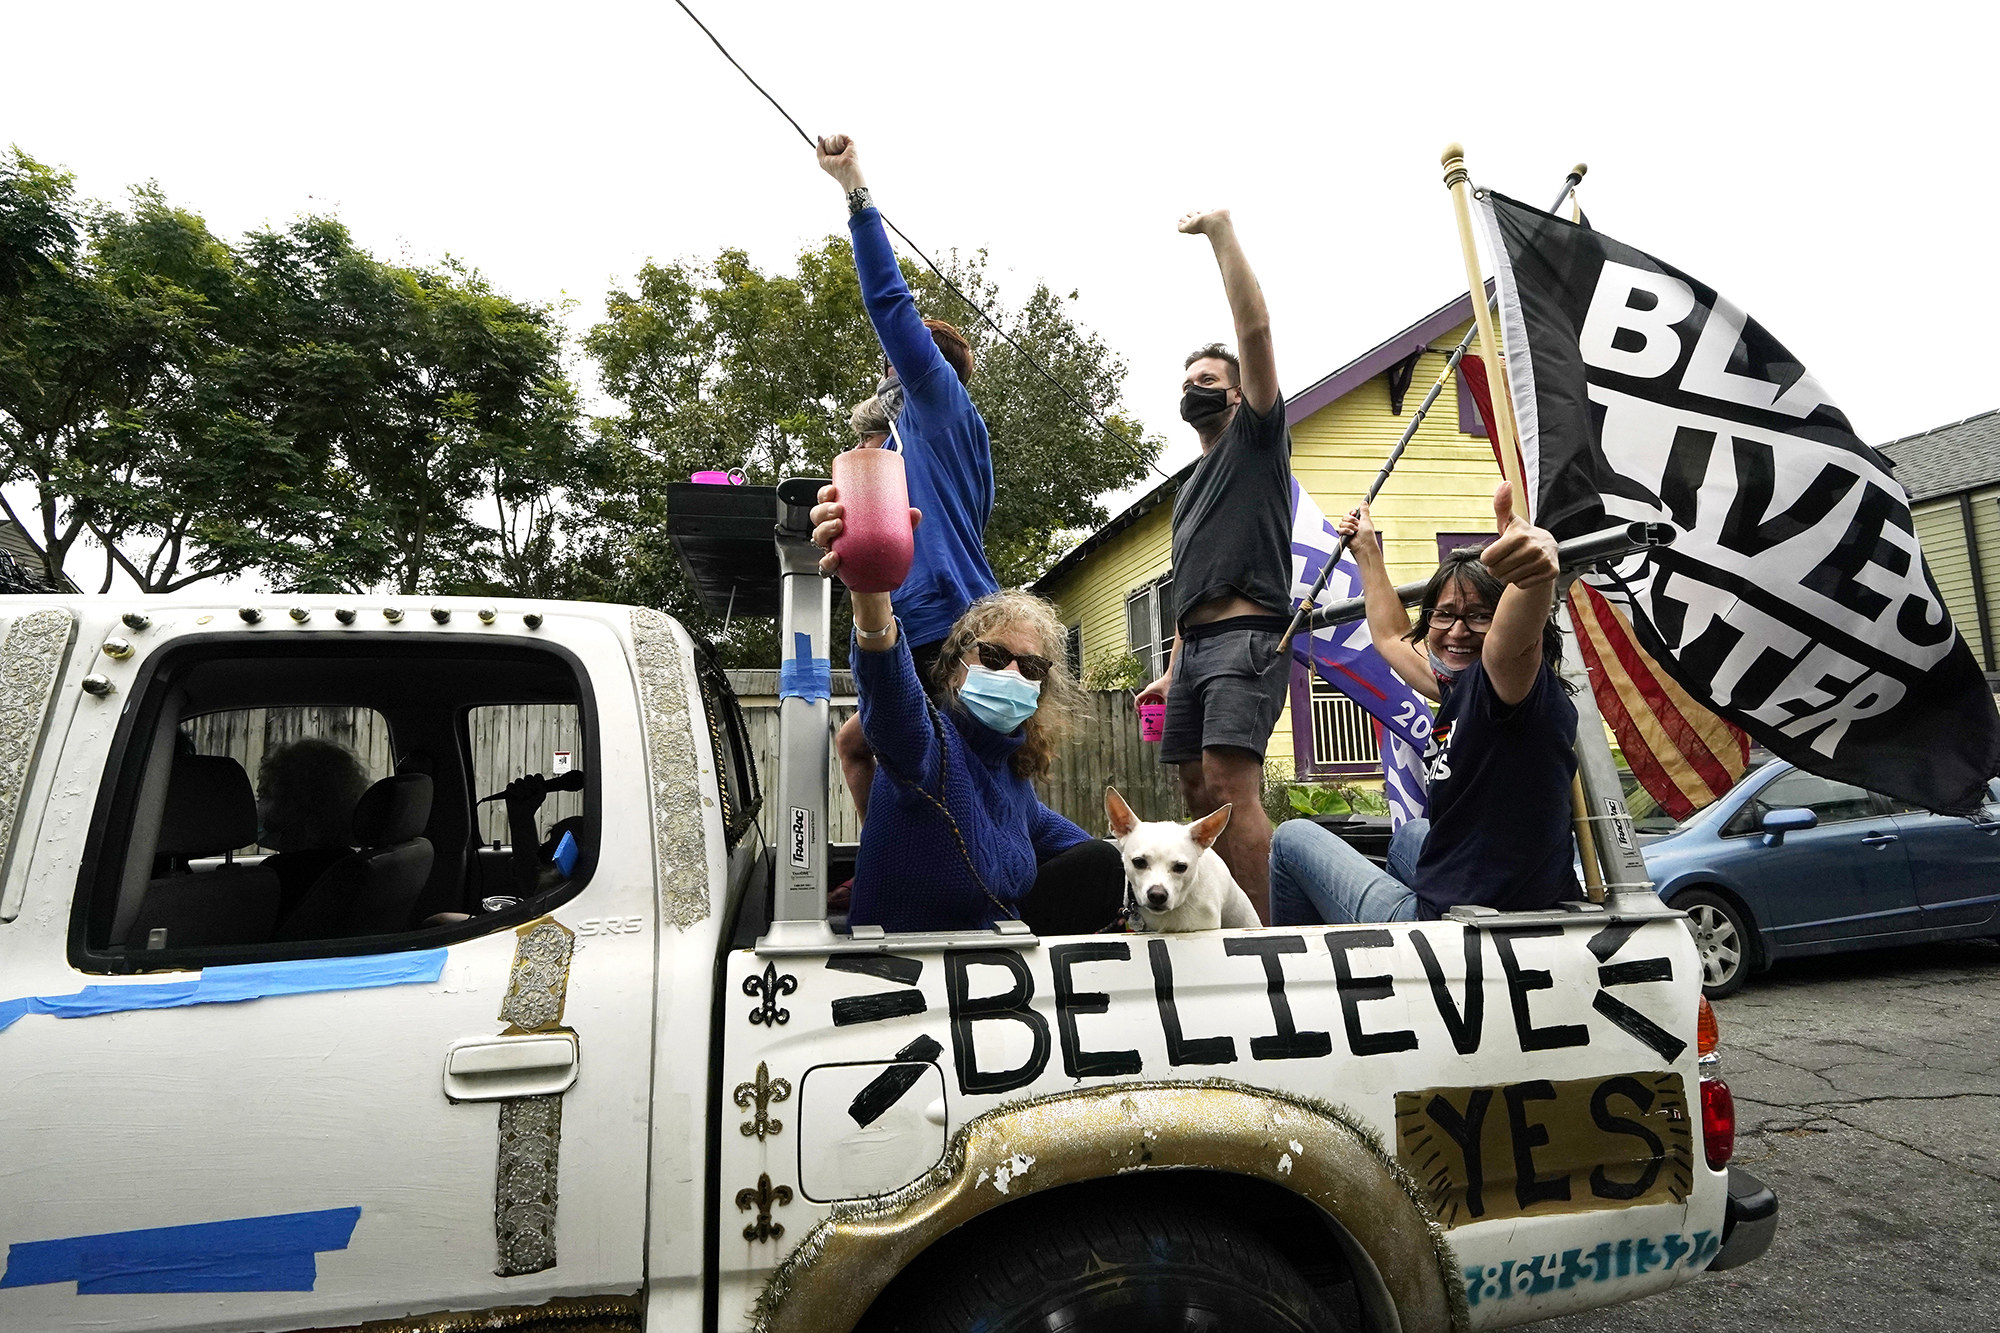 People raise their fists, smile, and raise a glass in the back of a pickup truck, where a Black Lives Matter flag waves